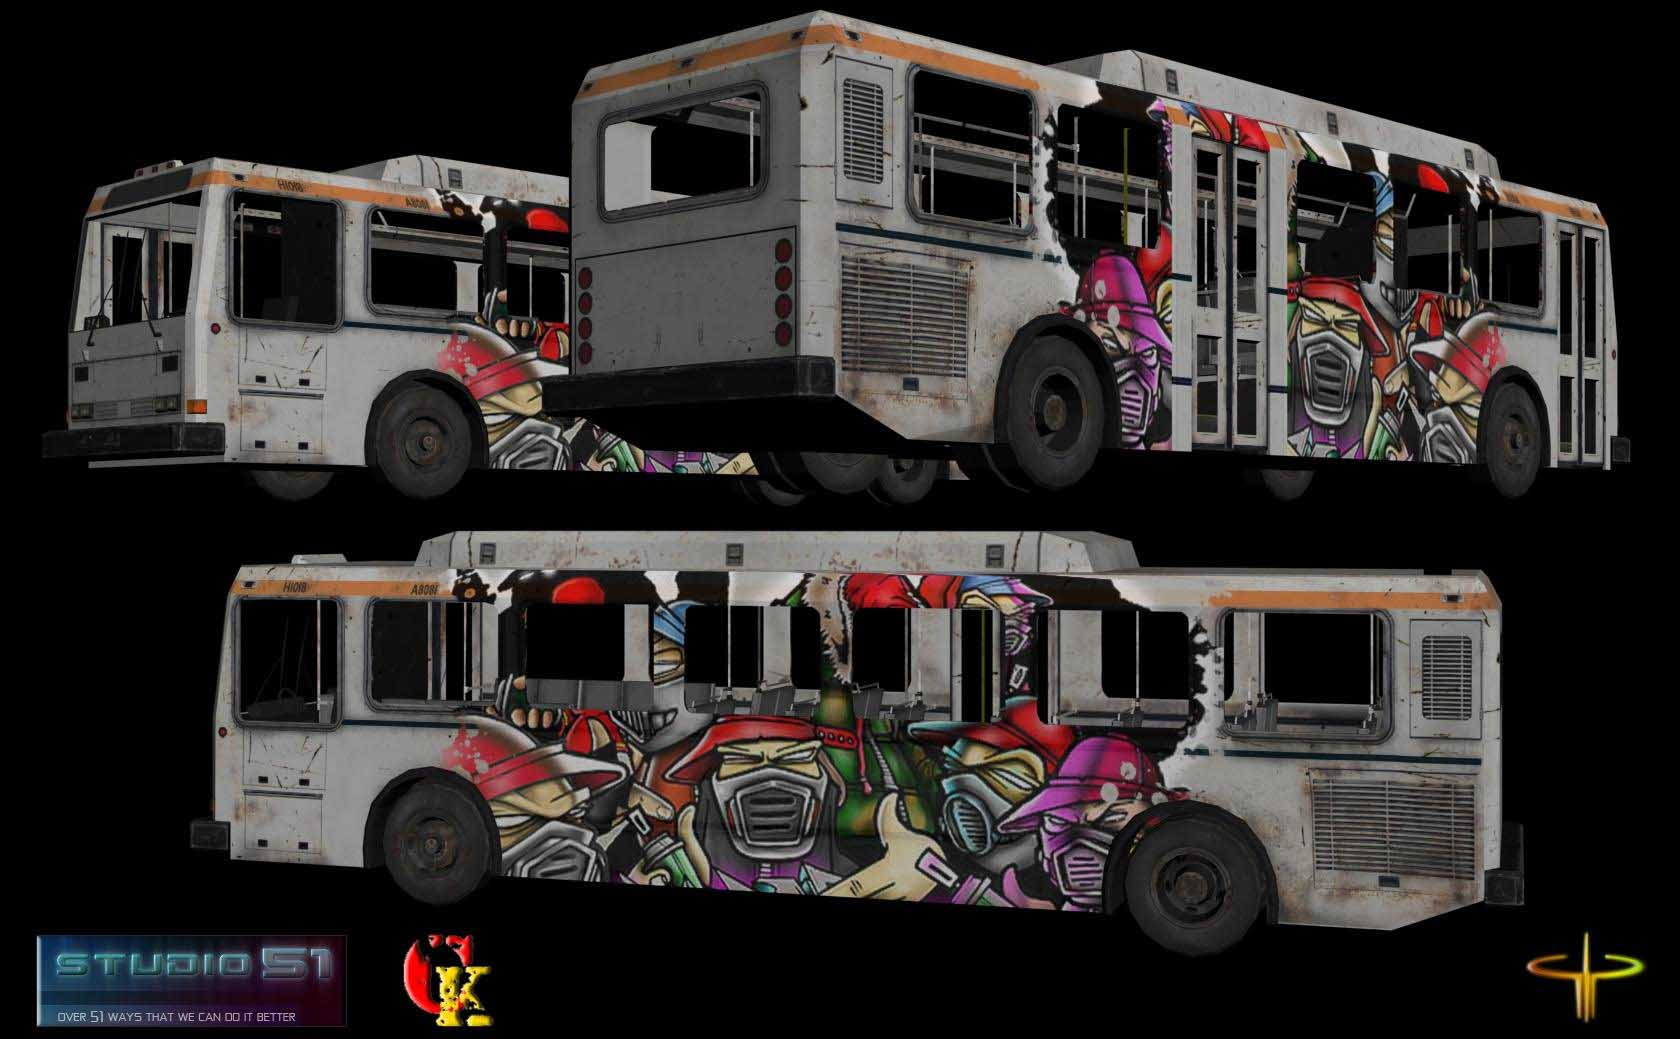 cod4, other / misc, graffiti bus, n/a